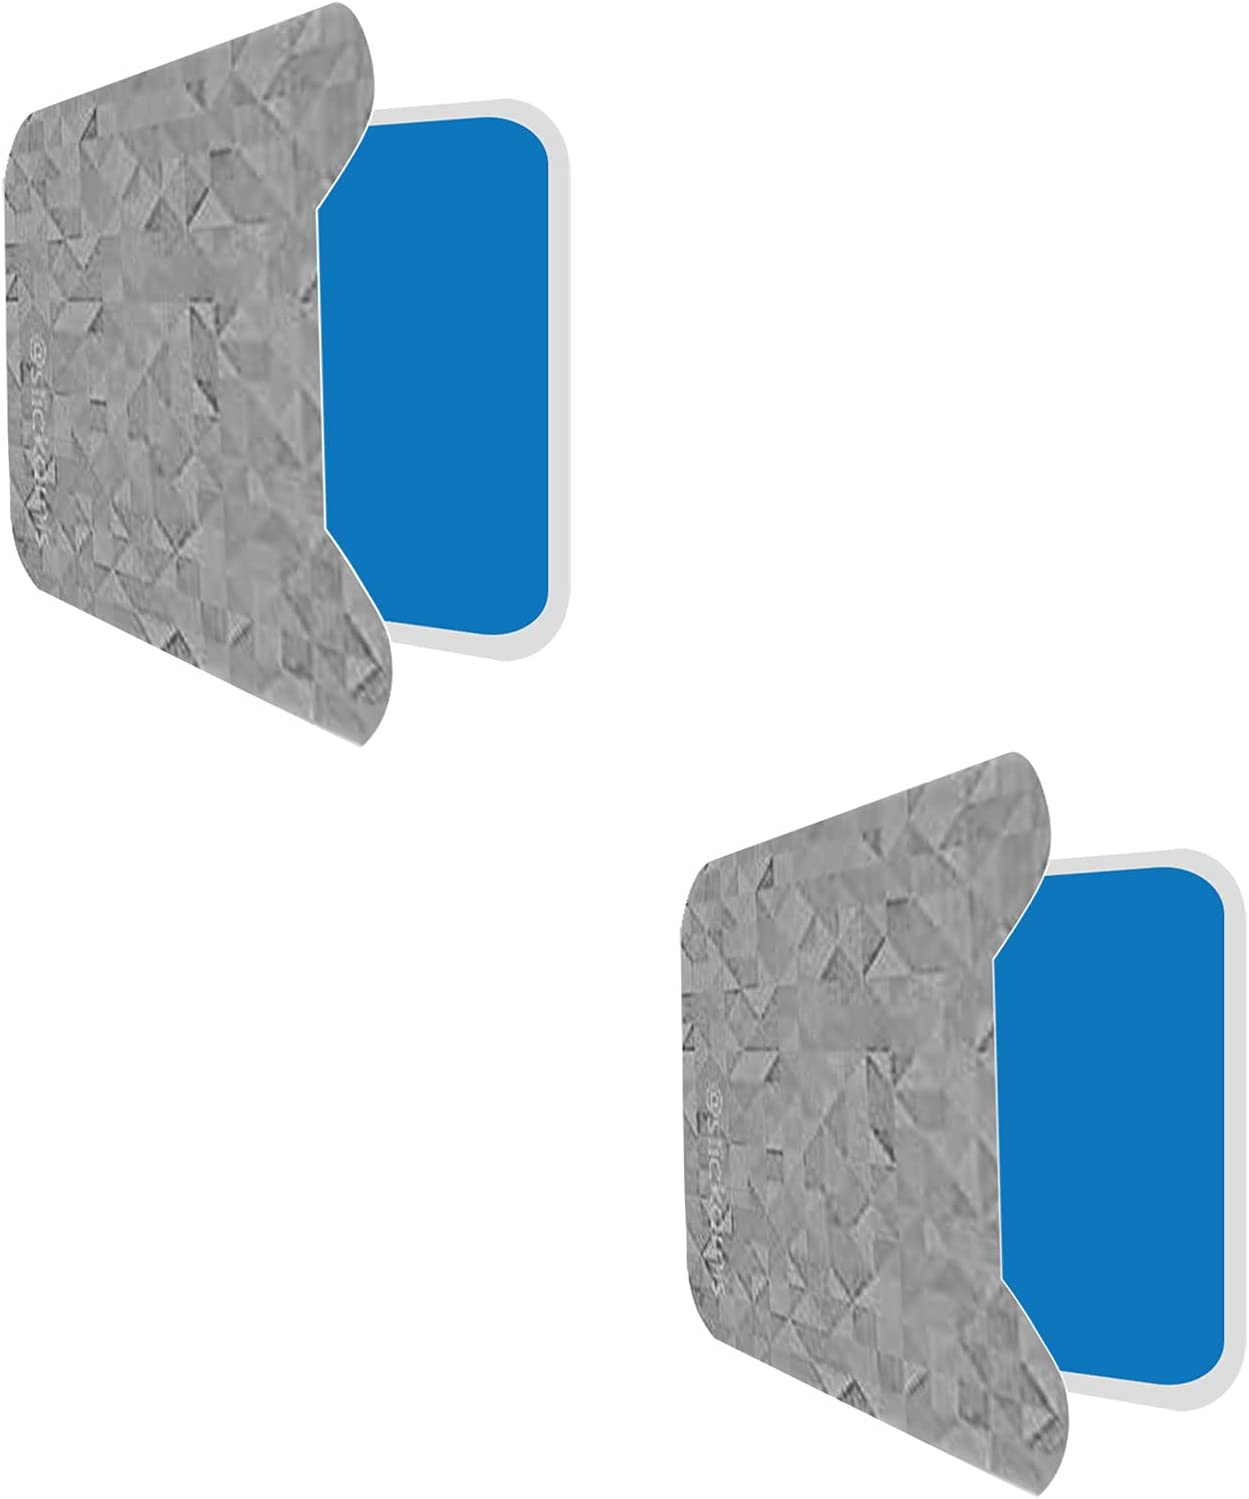 STICK-AMIS Hands-Free Phone Sticker - Anti-Gravity Nanosuction Phone Holder Sticky Pad - Stick Your Phone Anywhere from Walls, Mirrors, Glass, Car Dashboards & Smooth Flat Surfaces - Gray Bae 2 Pack